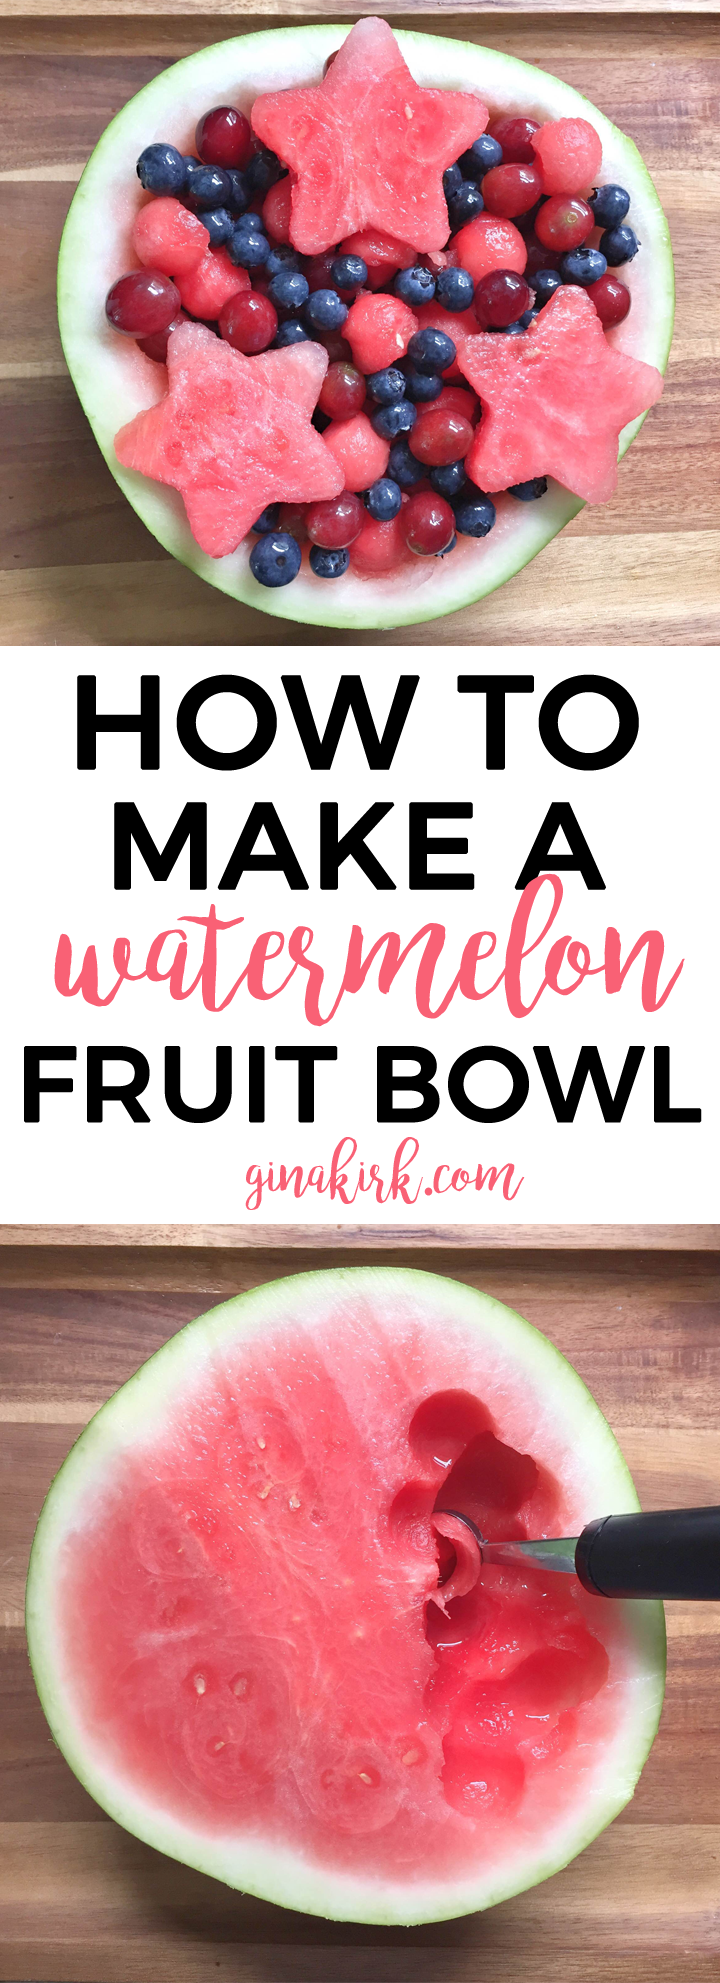 How to make a watermelon fruit bowl | 4th of July party fruit | 4th of July snack idea | How to make watermelon fruit salad GinaKirk.com @ginaekirk